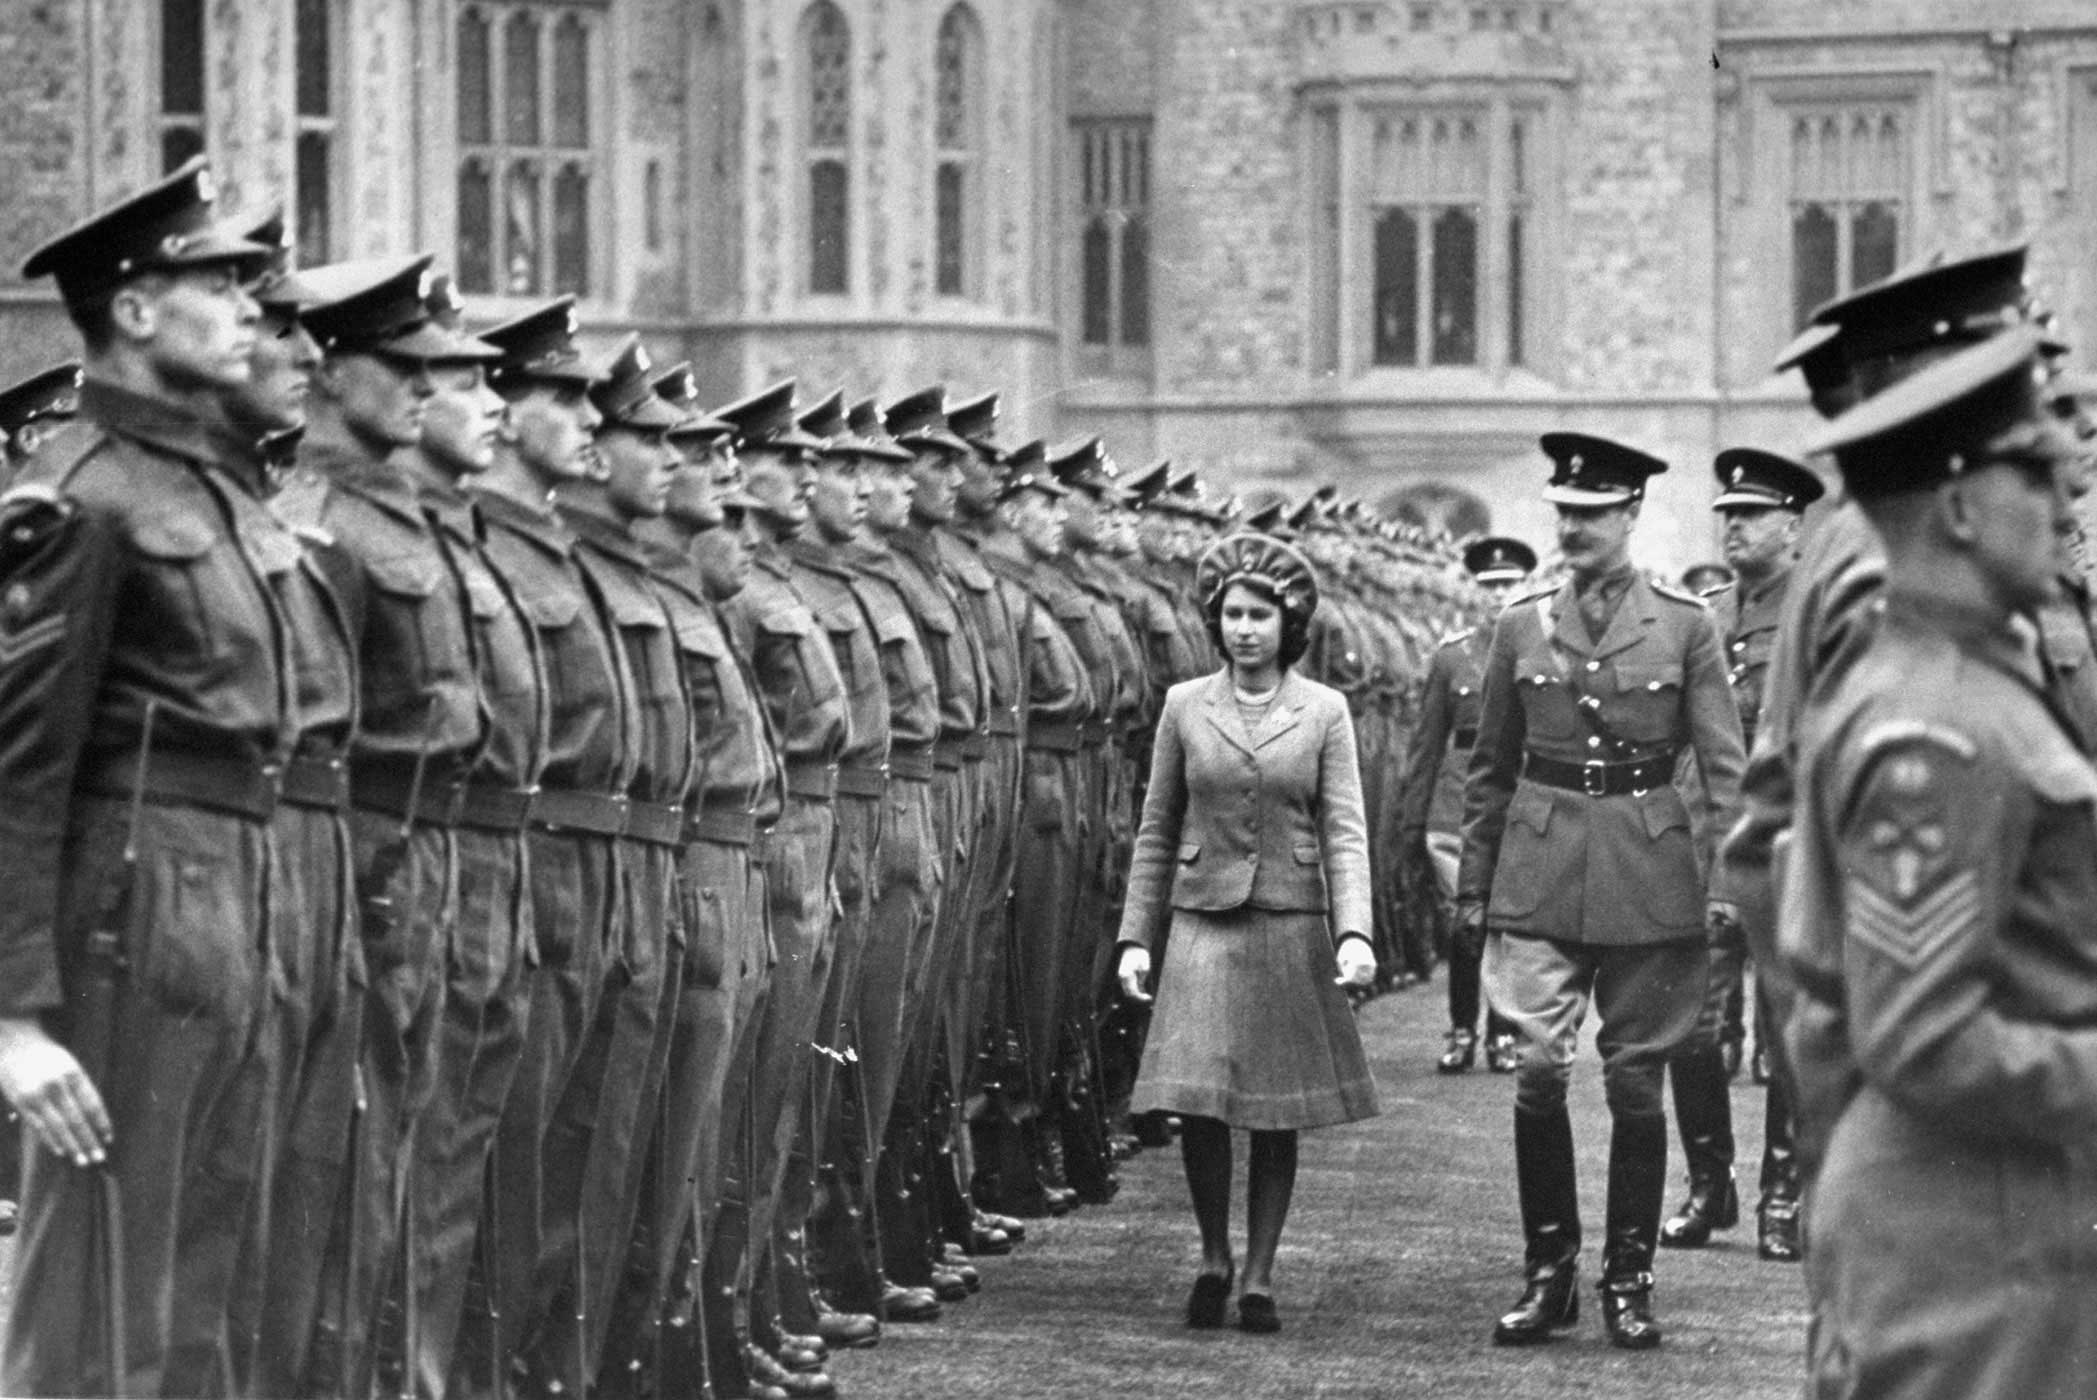 Princess Elizabeth, on her 16th birthday on April 21, 1942, reviews the Grenadier Guards, the most senior regiment of the British infantry. She was appointed as the Colonel-in-Chief as part of her expanding royal duties.